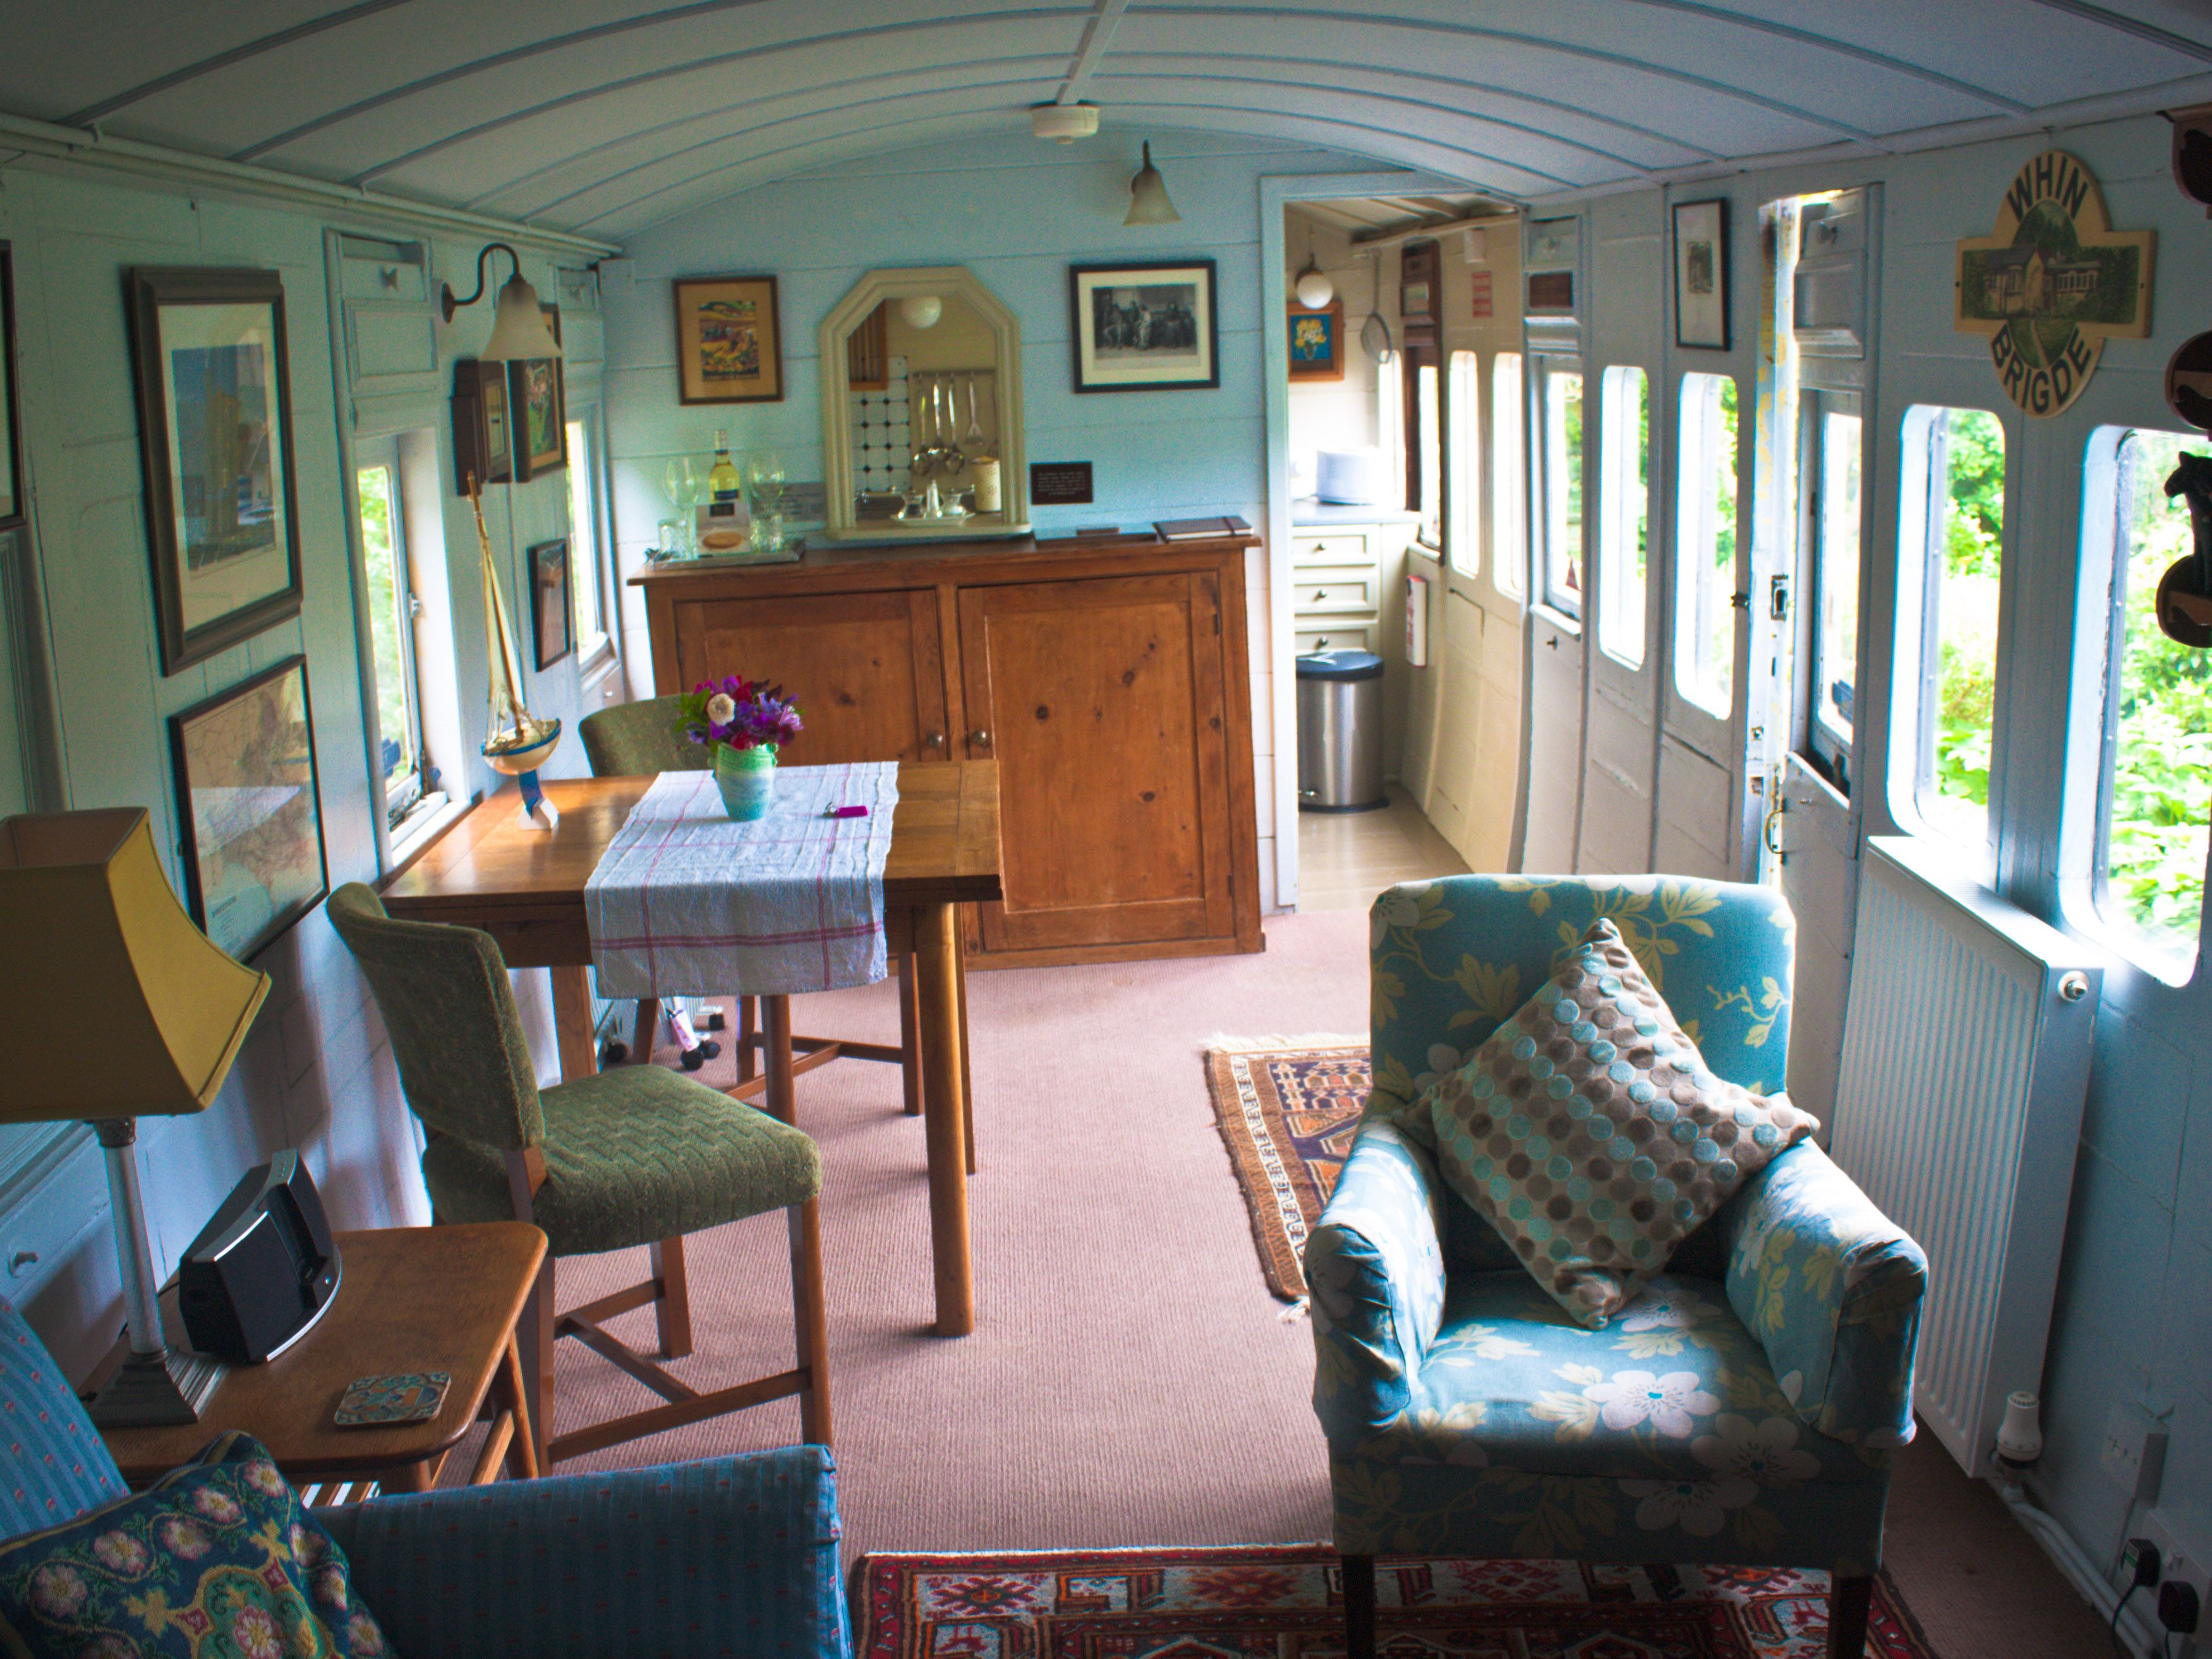 Gorgeous have always wanted a train carriage home